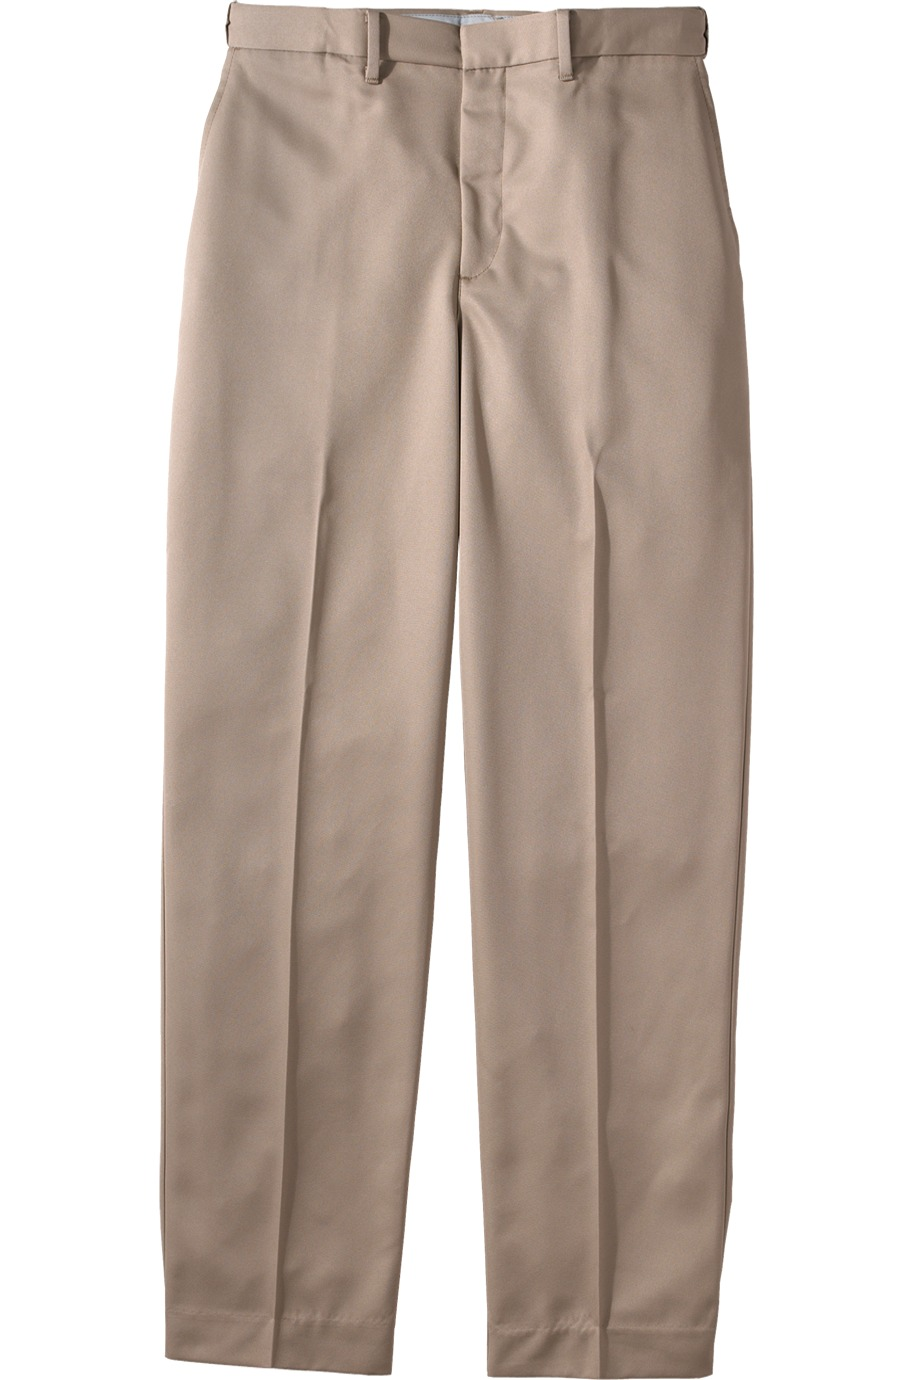 Edwards Garment 2574 - Men's Microfiber Flat Front Pant